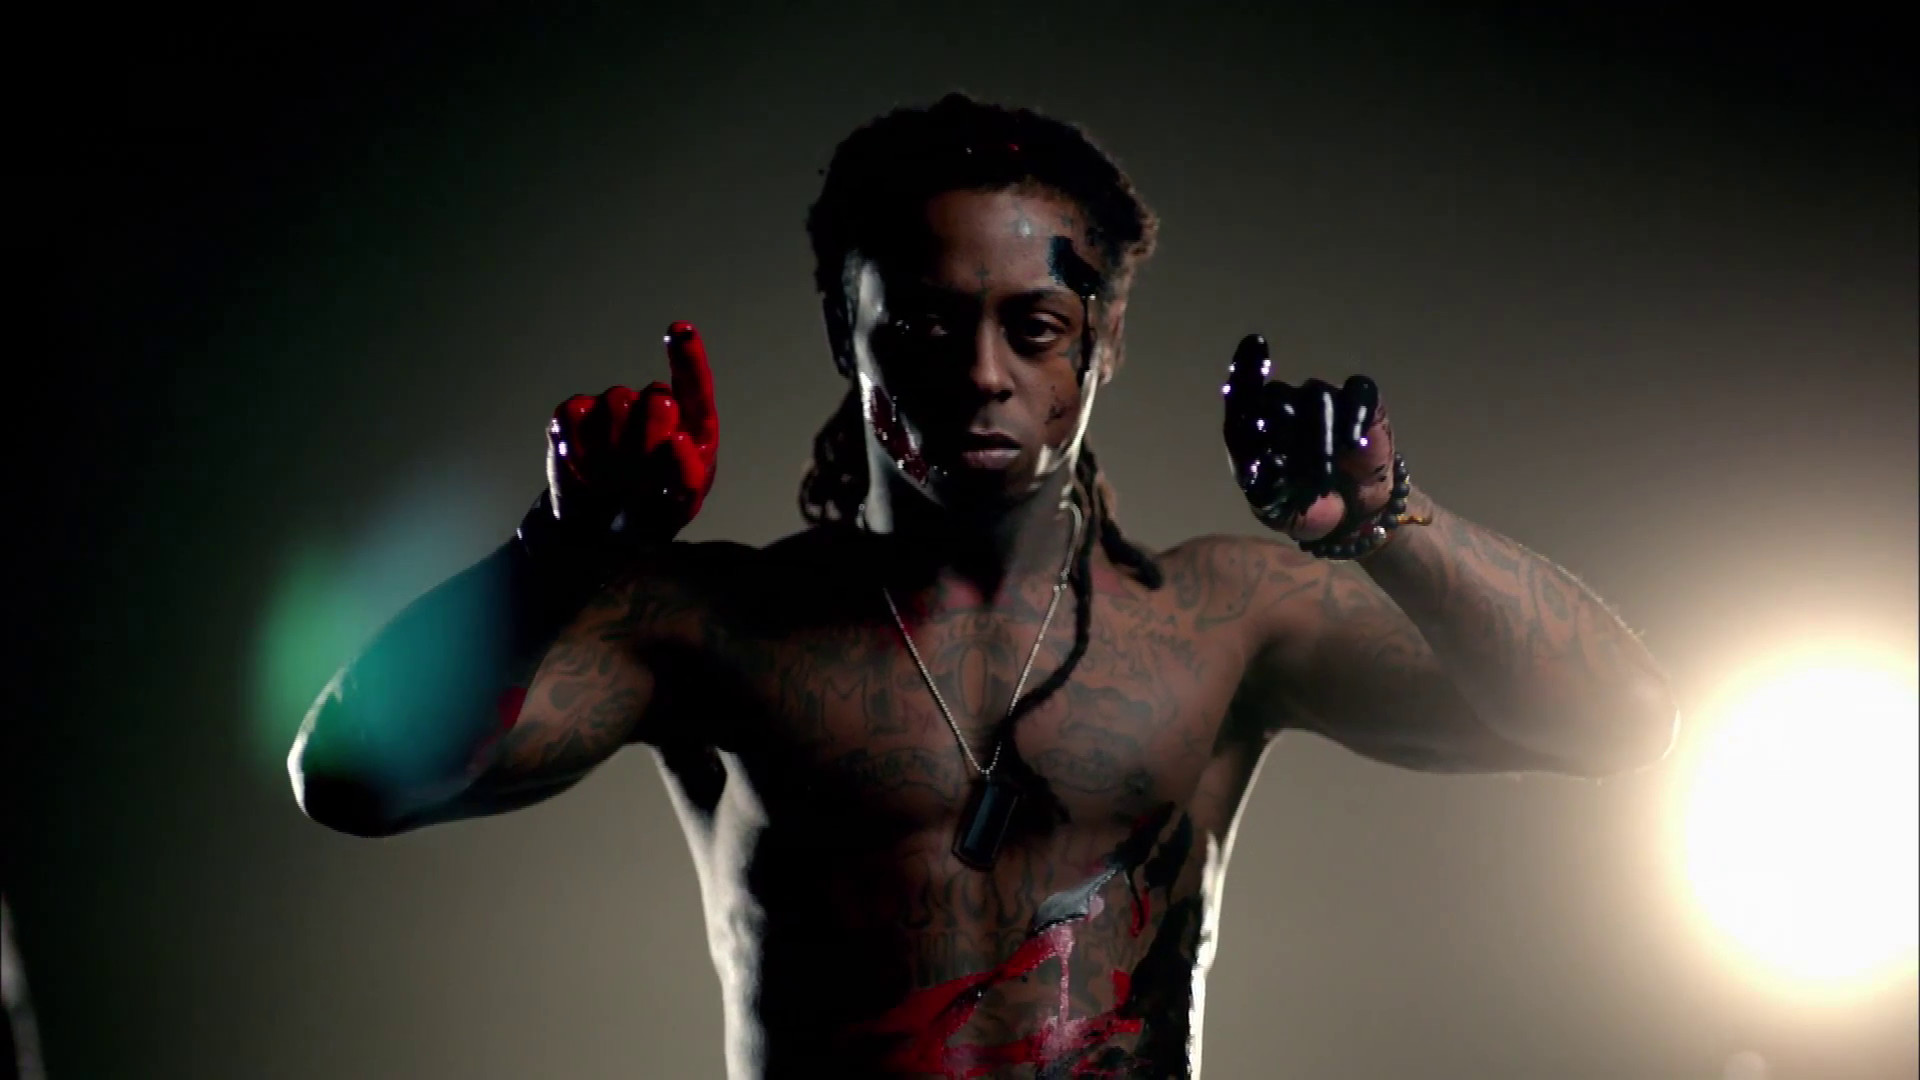 1920x1080 Lil Wayne Wallpapers Images Photos Pictures Backgrounds